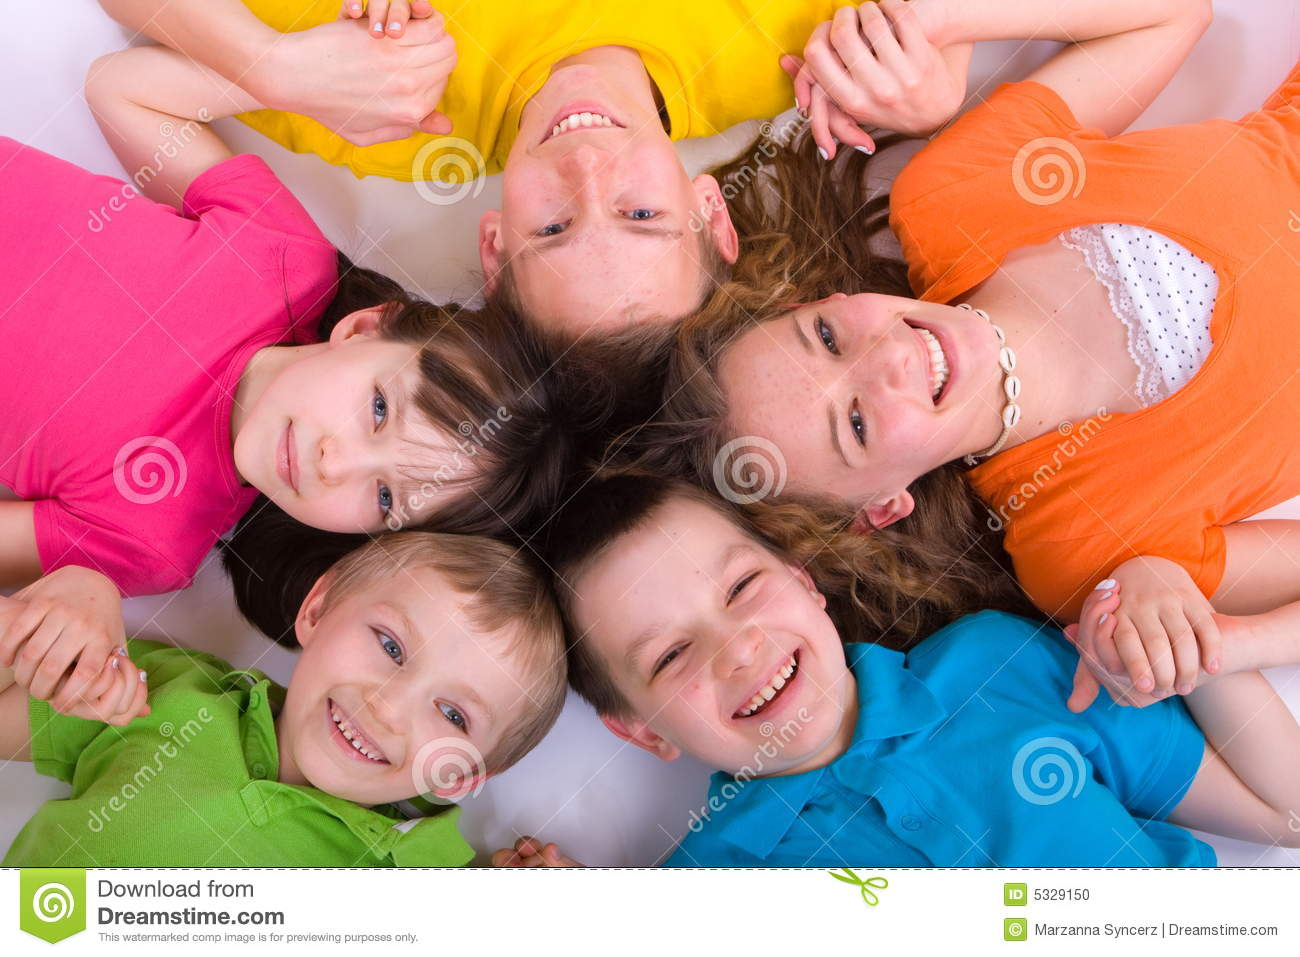 Five smiling children holding hands laying in a circle with their